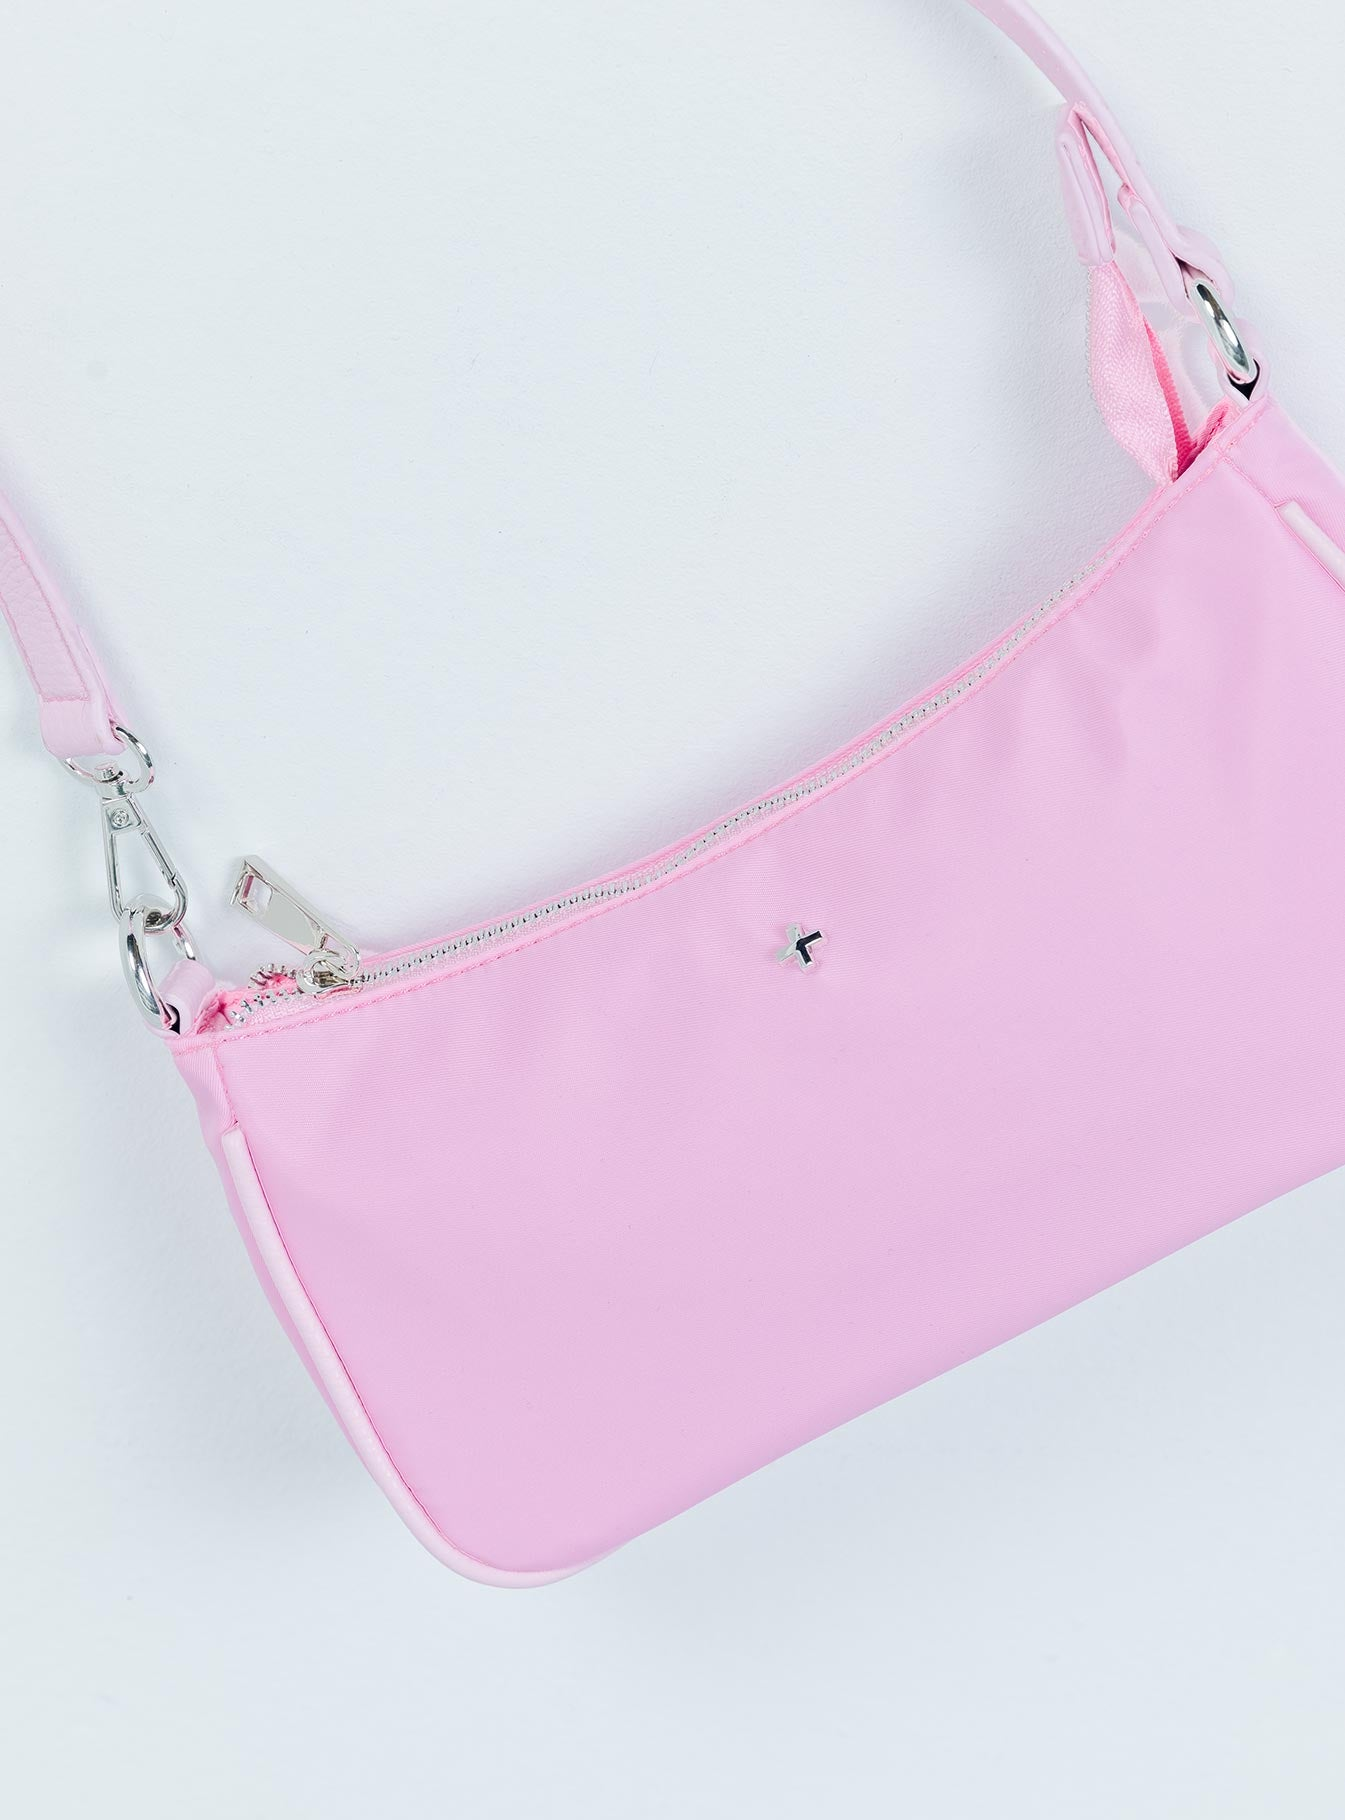 Peta & Jain Piper Bag Baby Pink Nylon